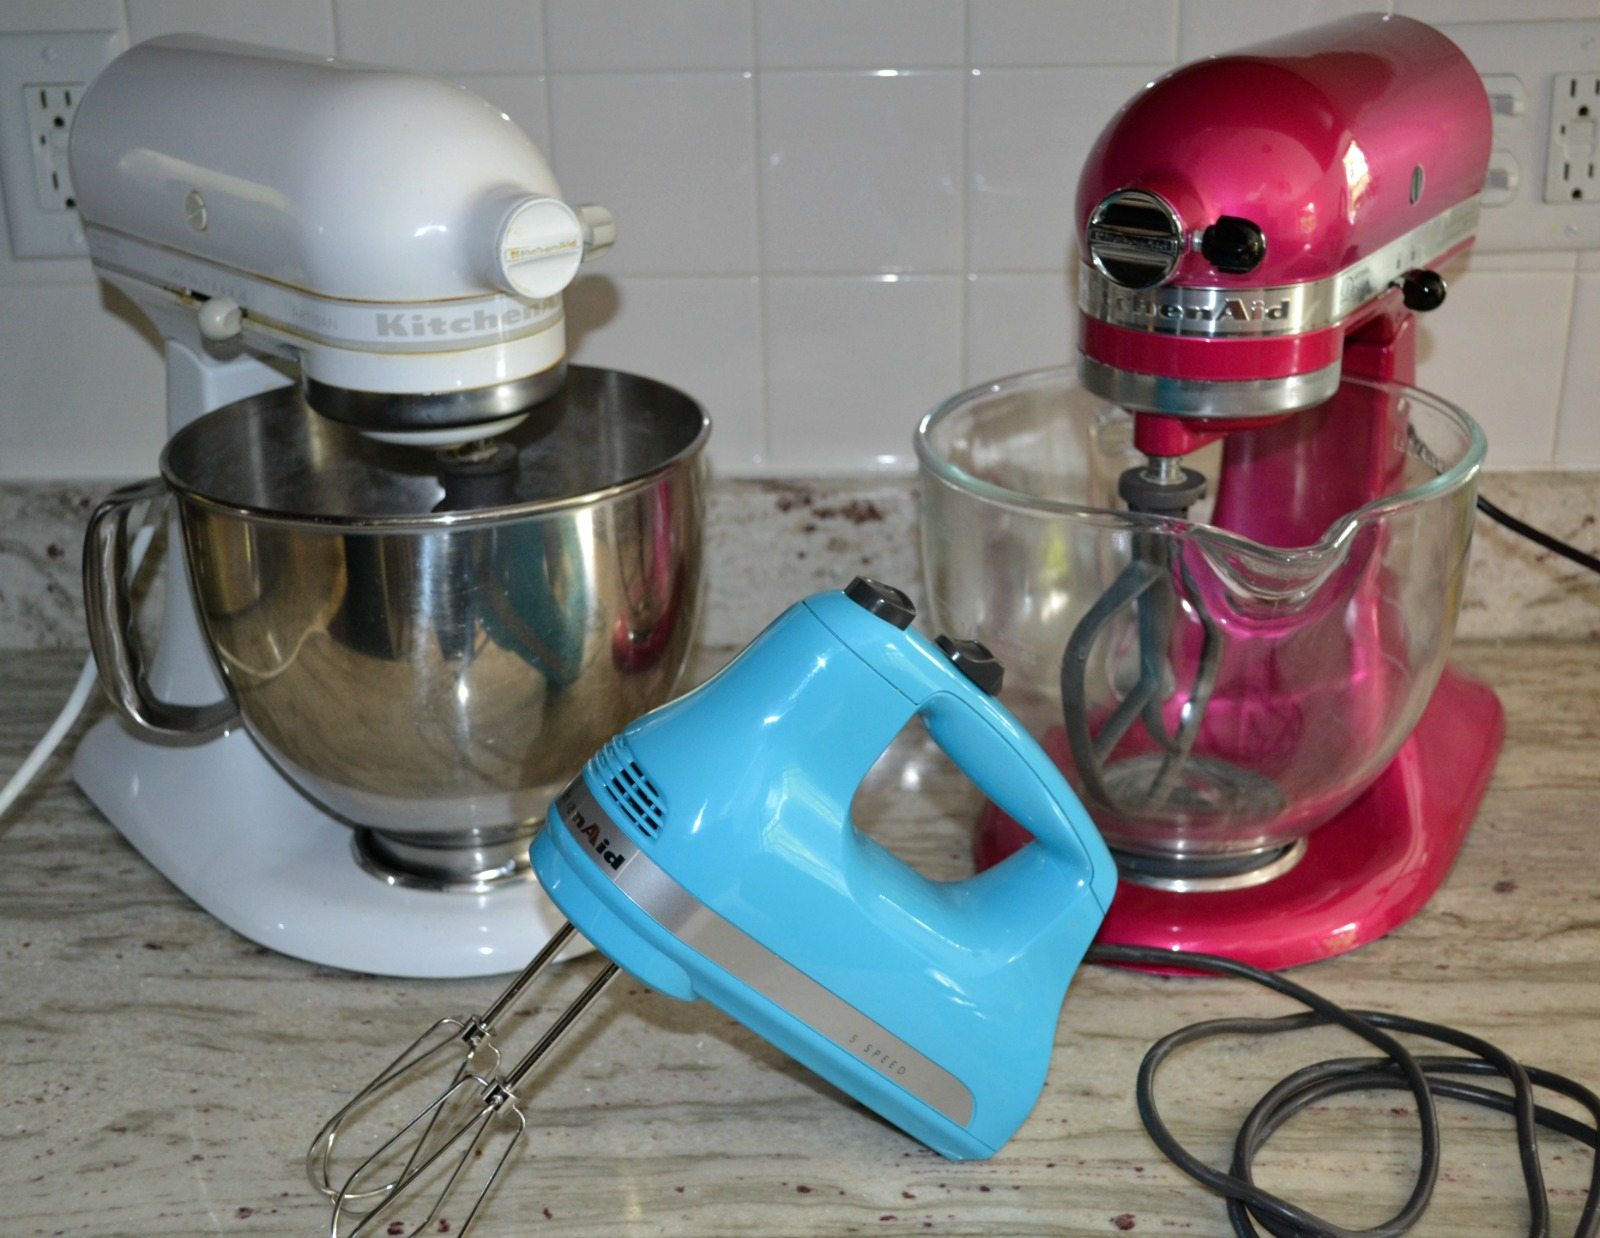 cooking classes for kids, mixers, kitchen equipment